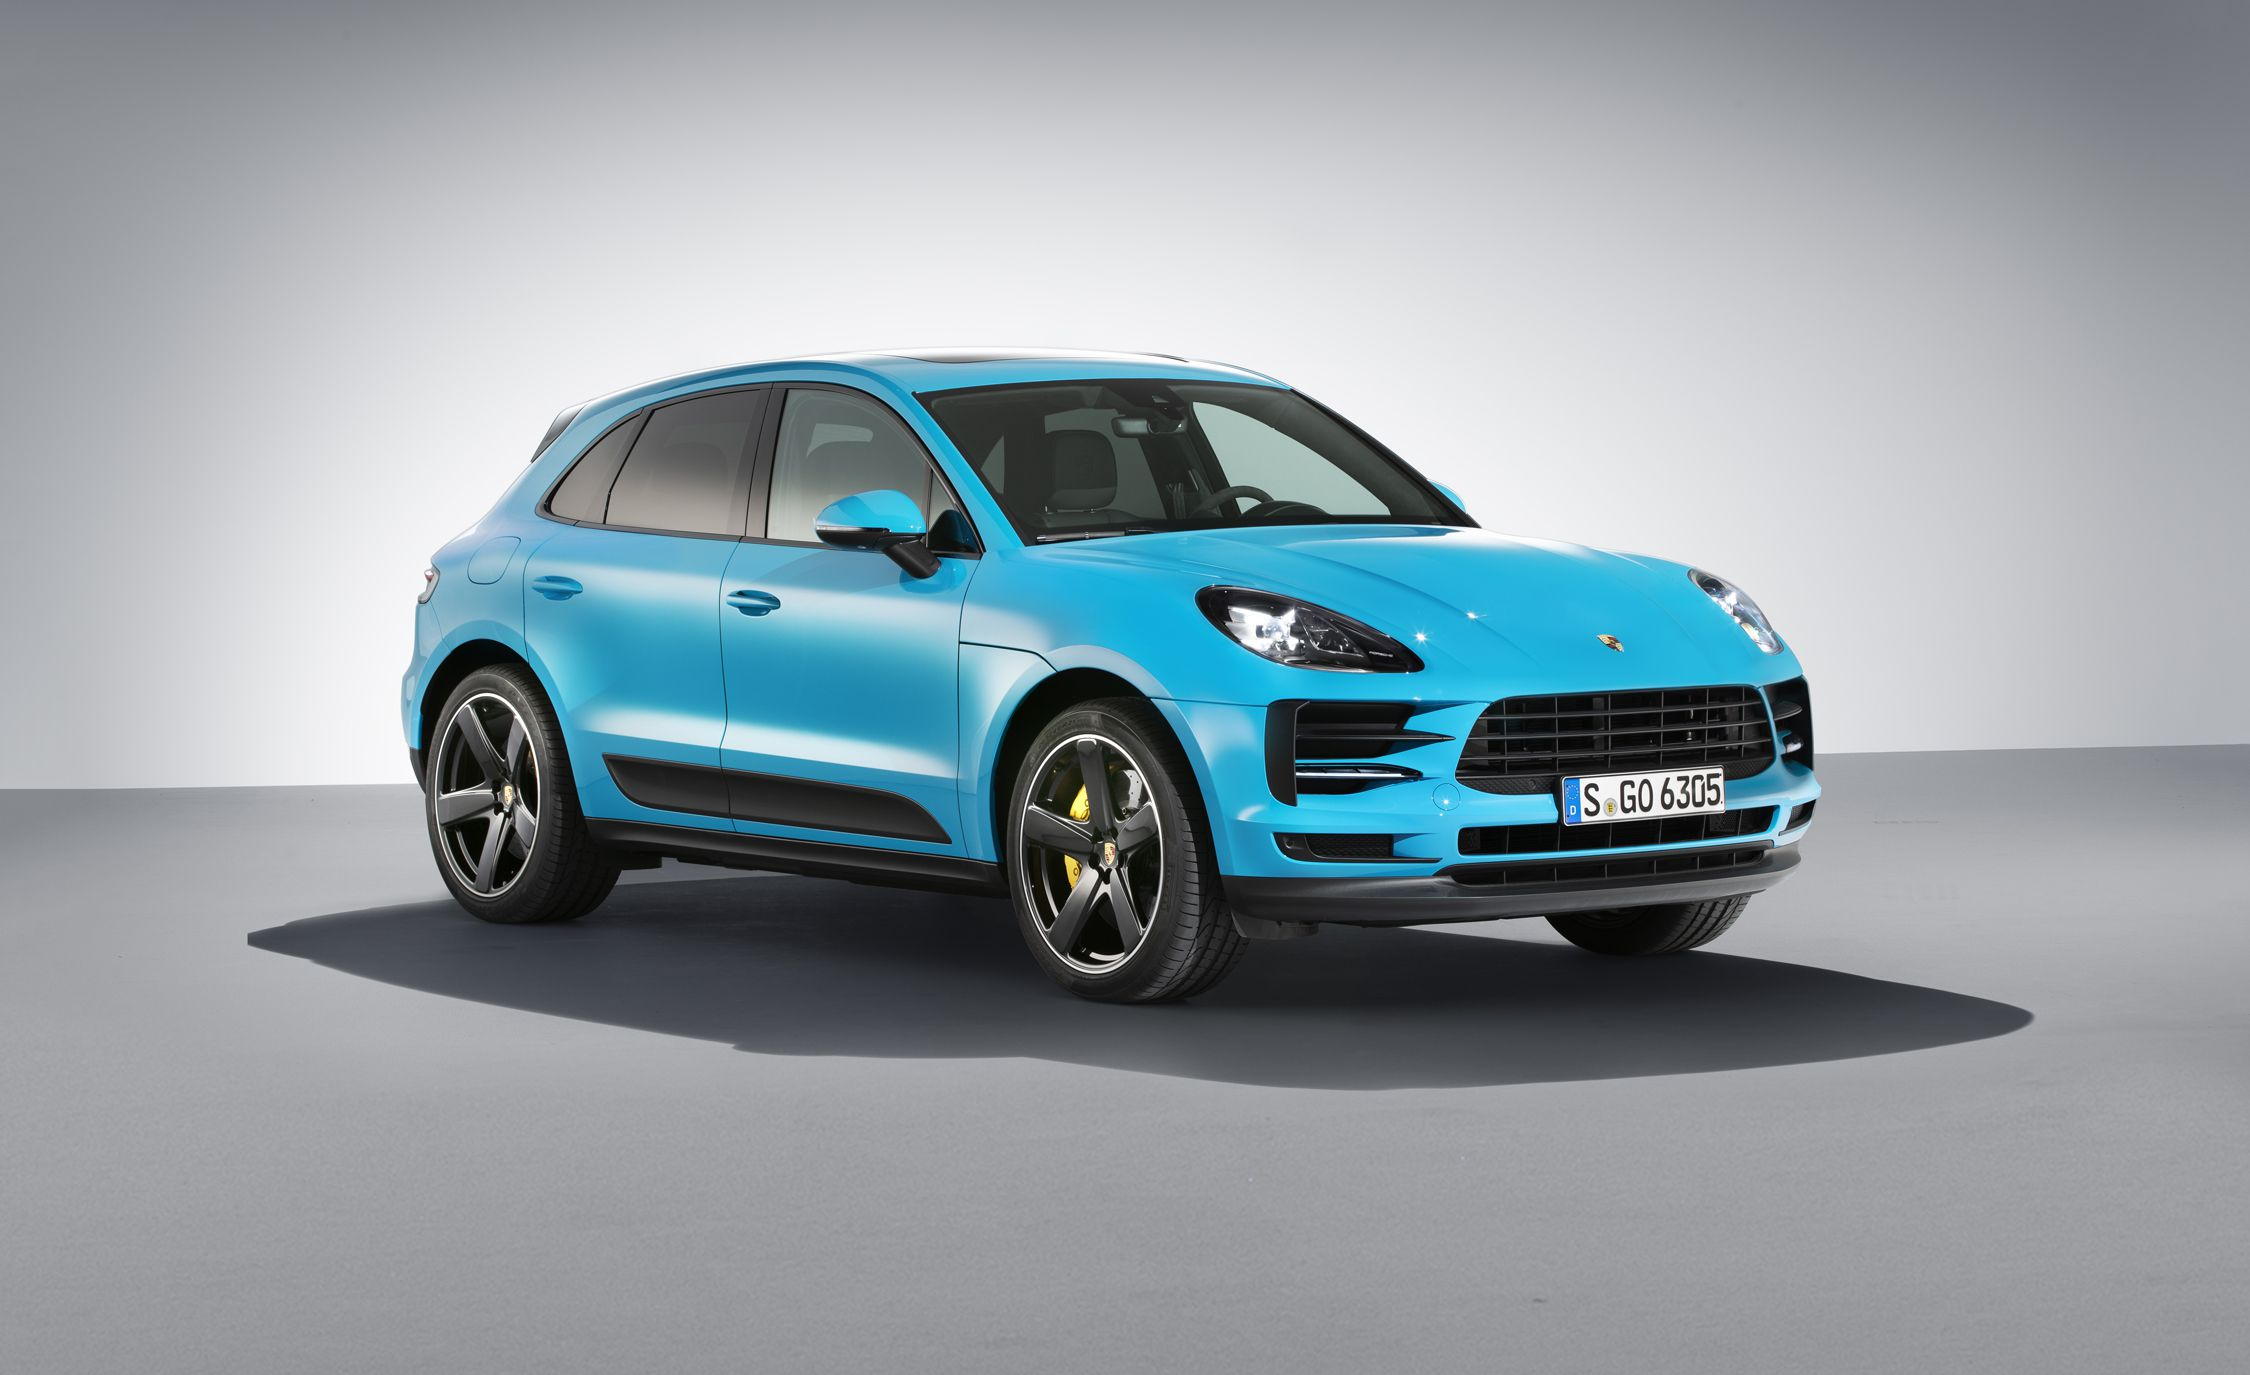 Used Cars Under $2000 Inspirational 2019 Porsche Macan Reviews